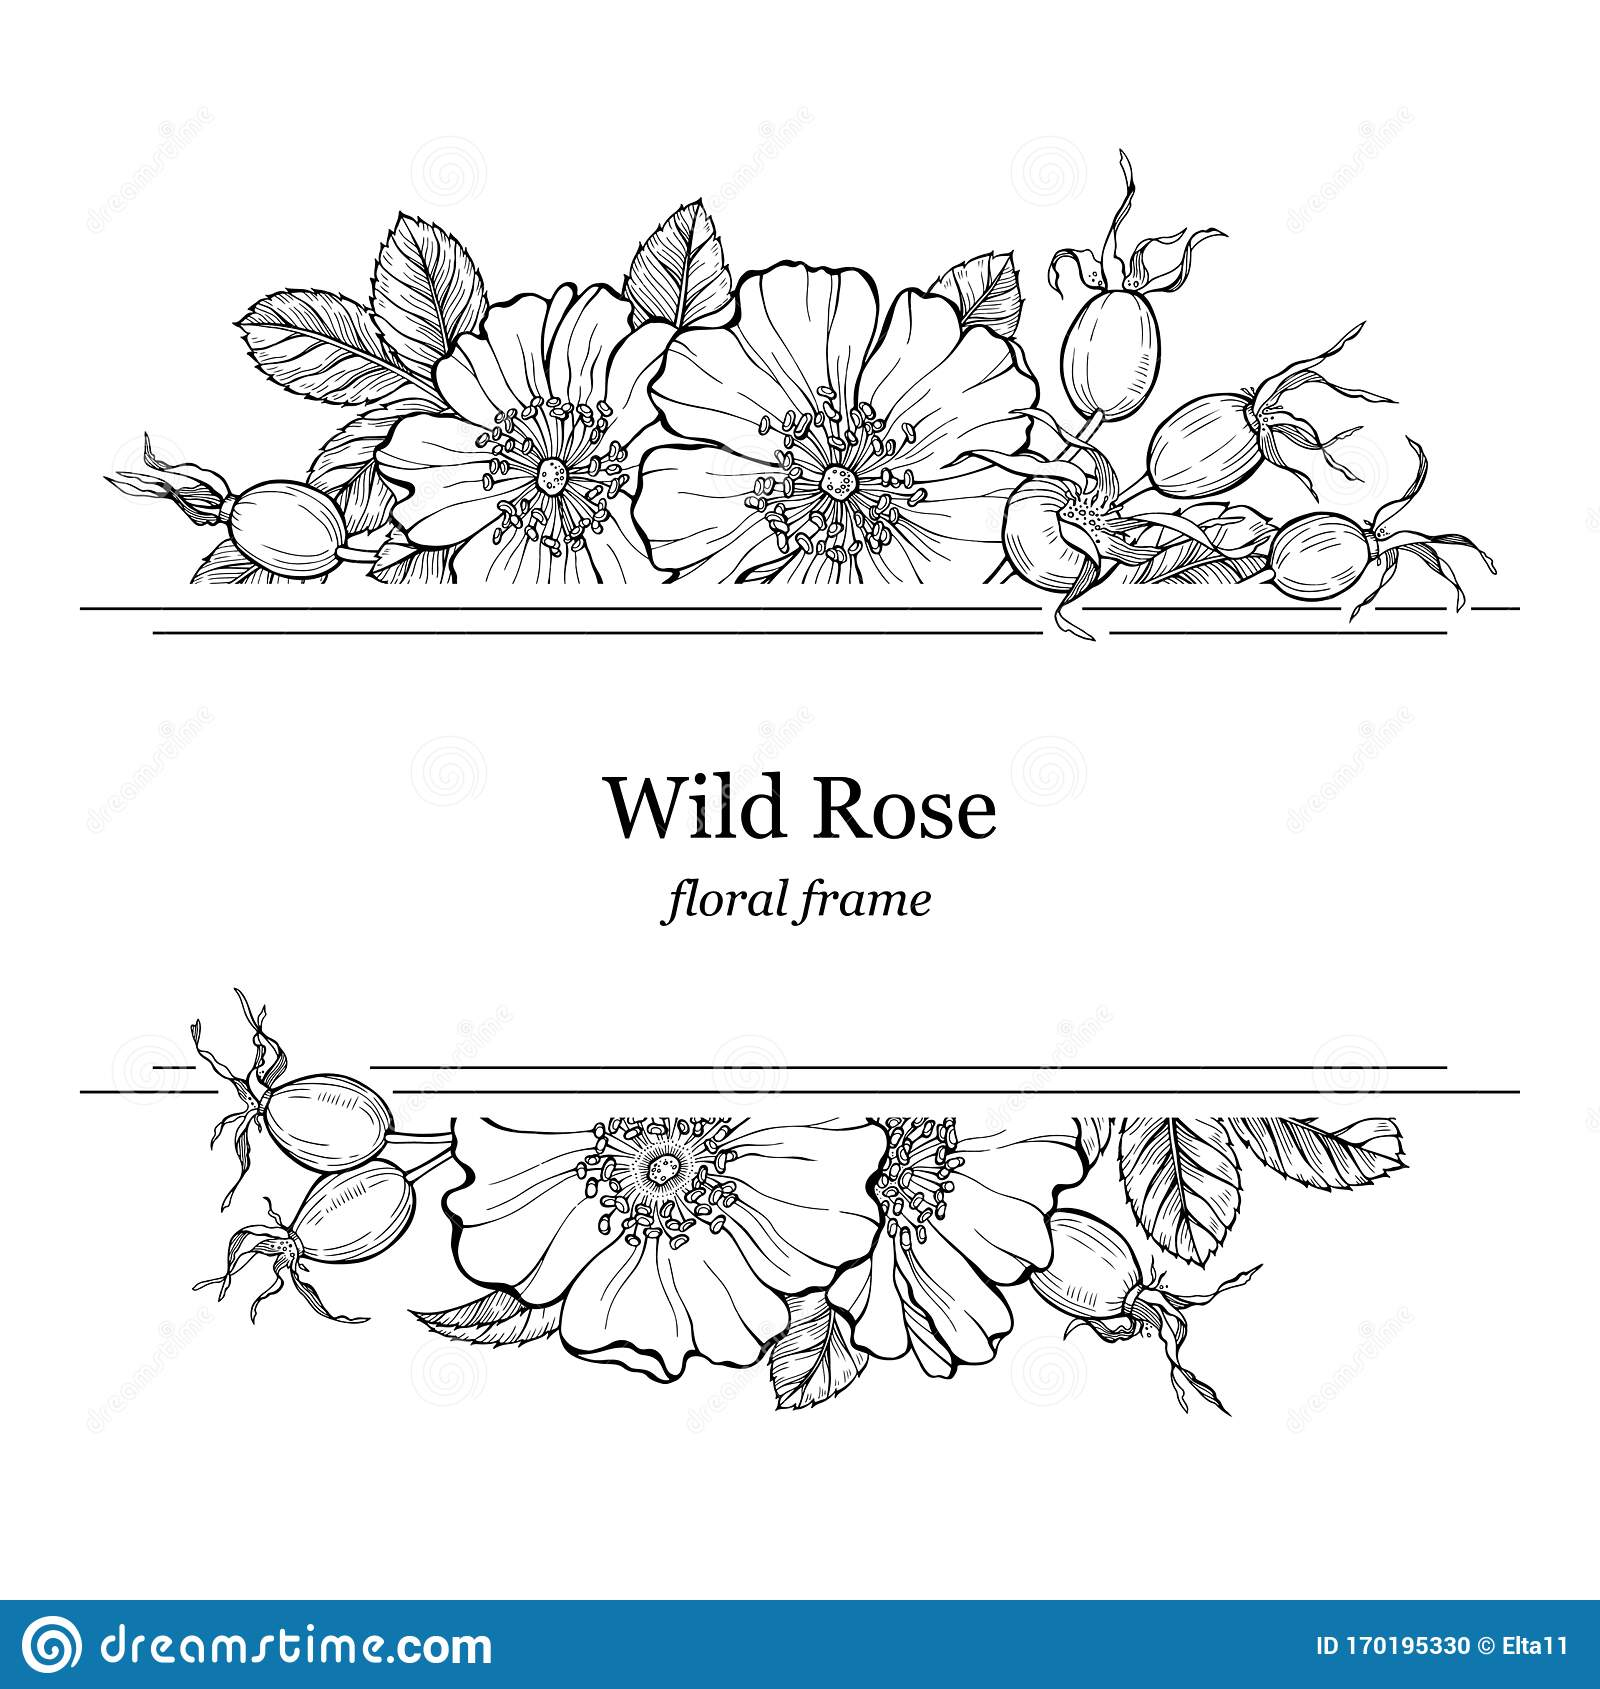 Wild Rose Flowers And Berries Frame Line Art Drawing Floral Border Template With Dog Rose Boquets Vector Illustration Stock Vector Illustration Of Berry Herbal 170195330